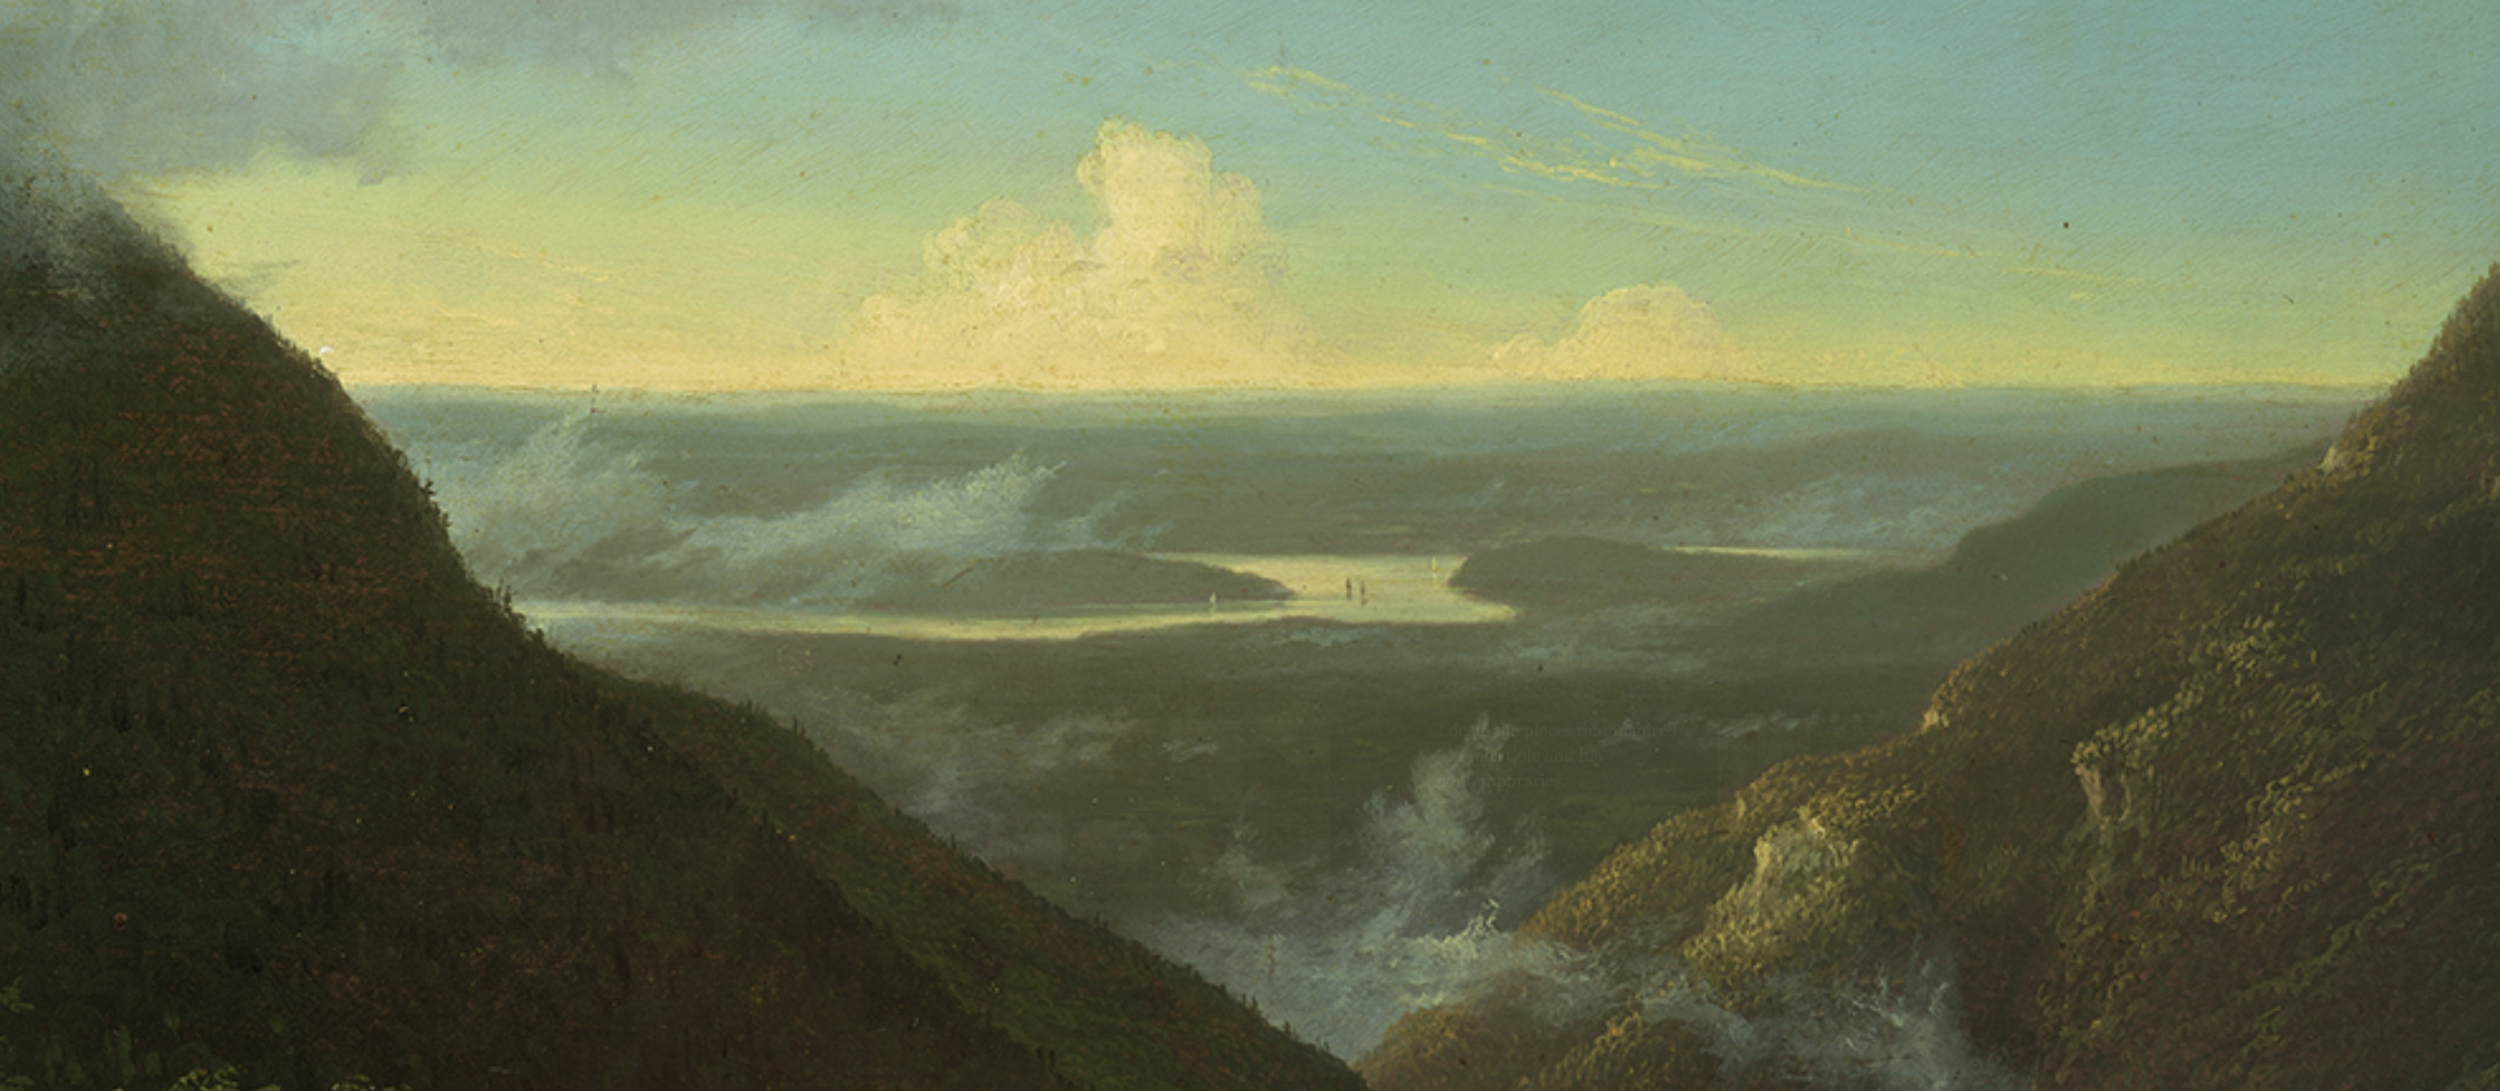 The Thomas Cole HouseA founder of the Hudson River School of painting, visit Cole's historic home and studios in the landscape that inspired it all. - thomascole.org